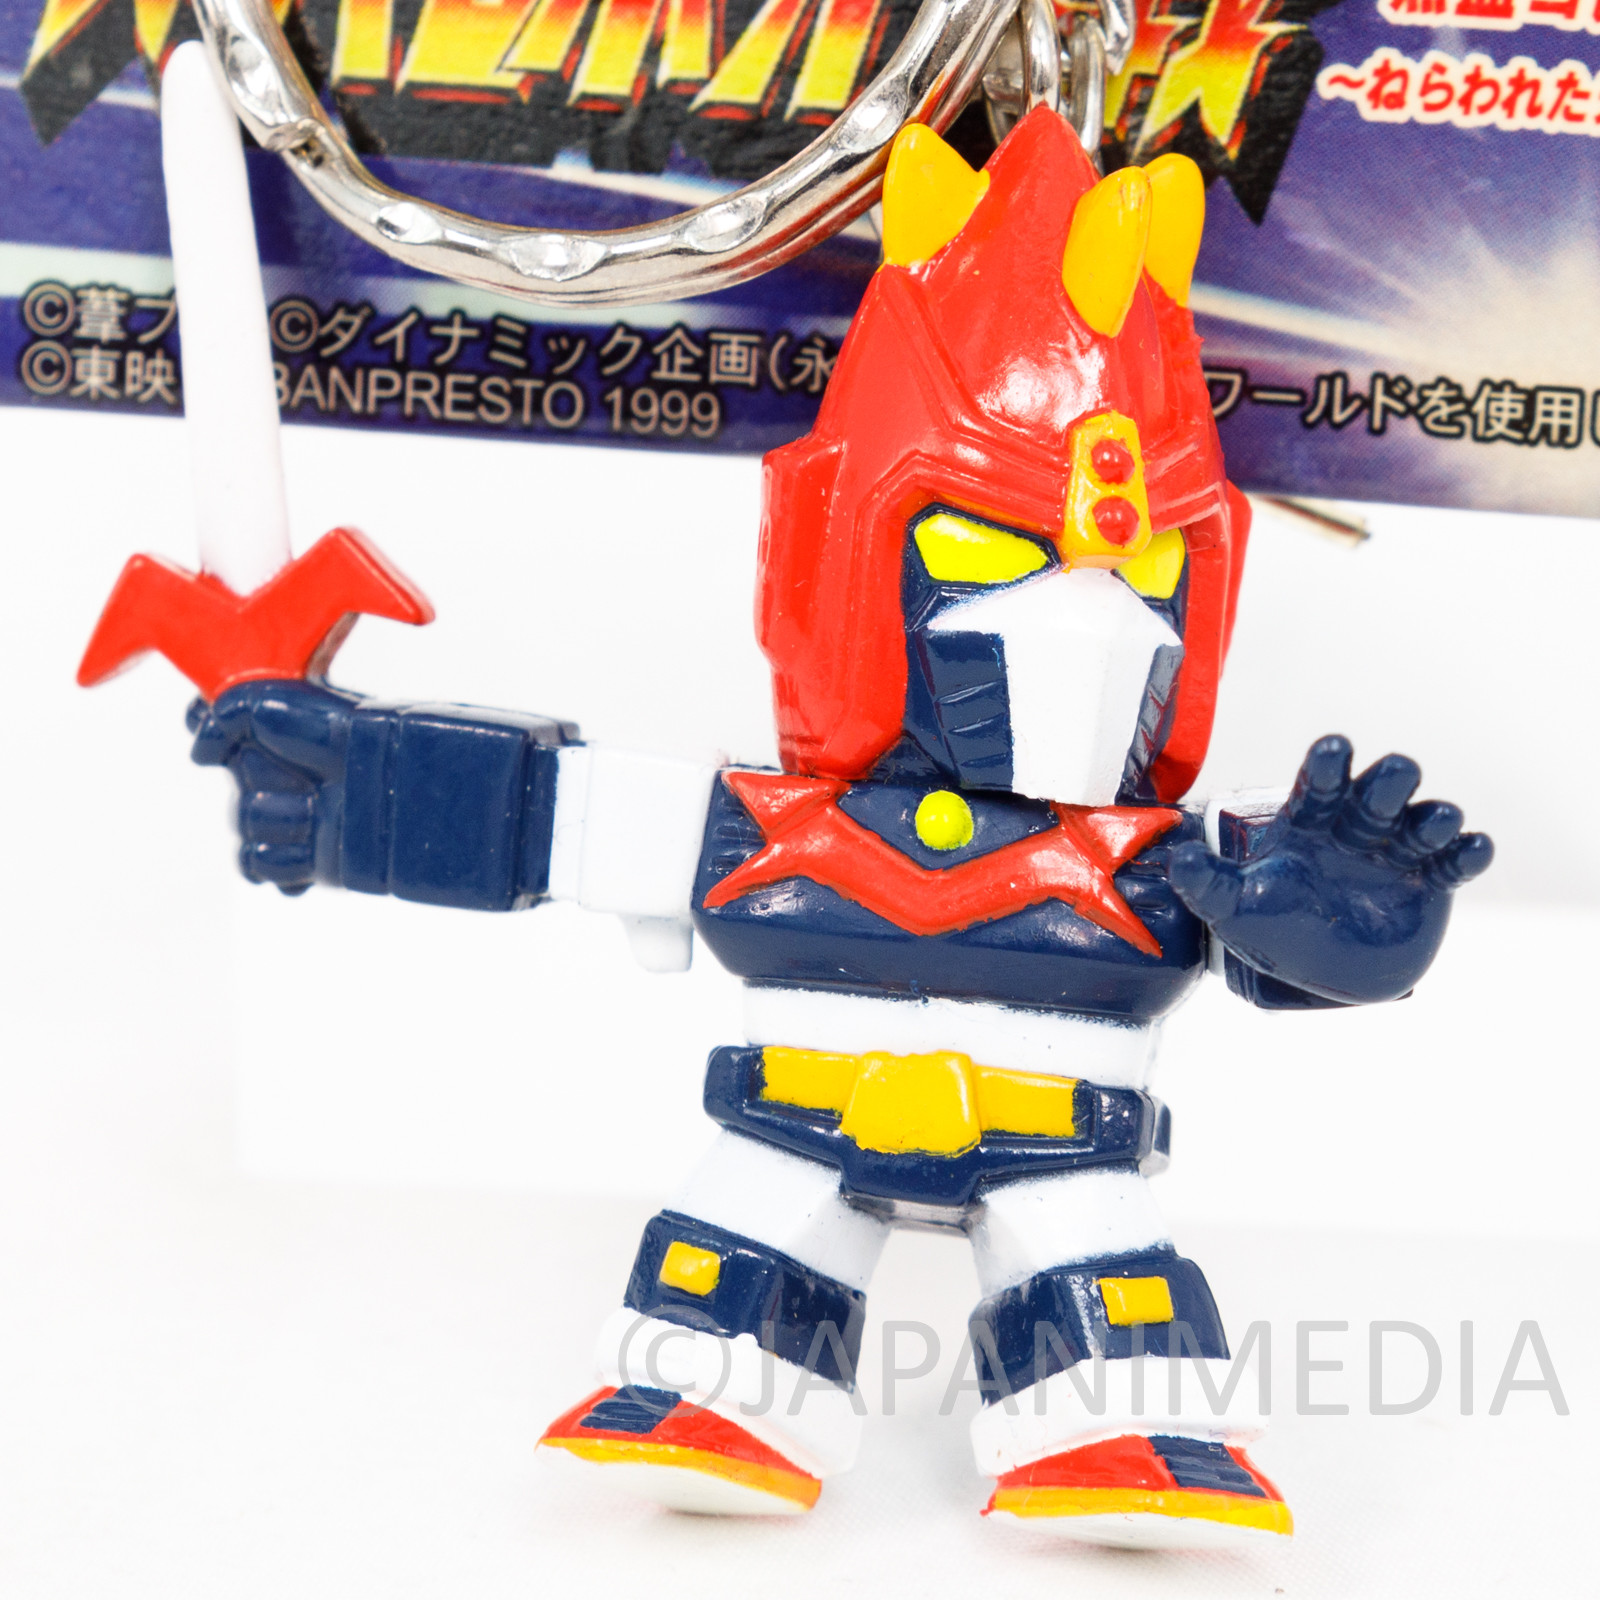 Choudenji Machine Voltes V Robot Wars Figure Key Chain JAPAN ANIME MANGA